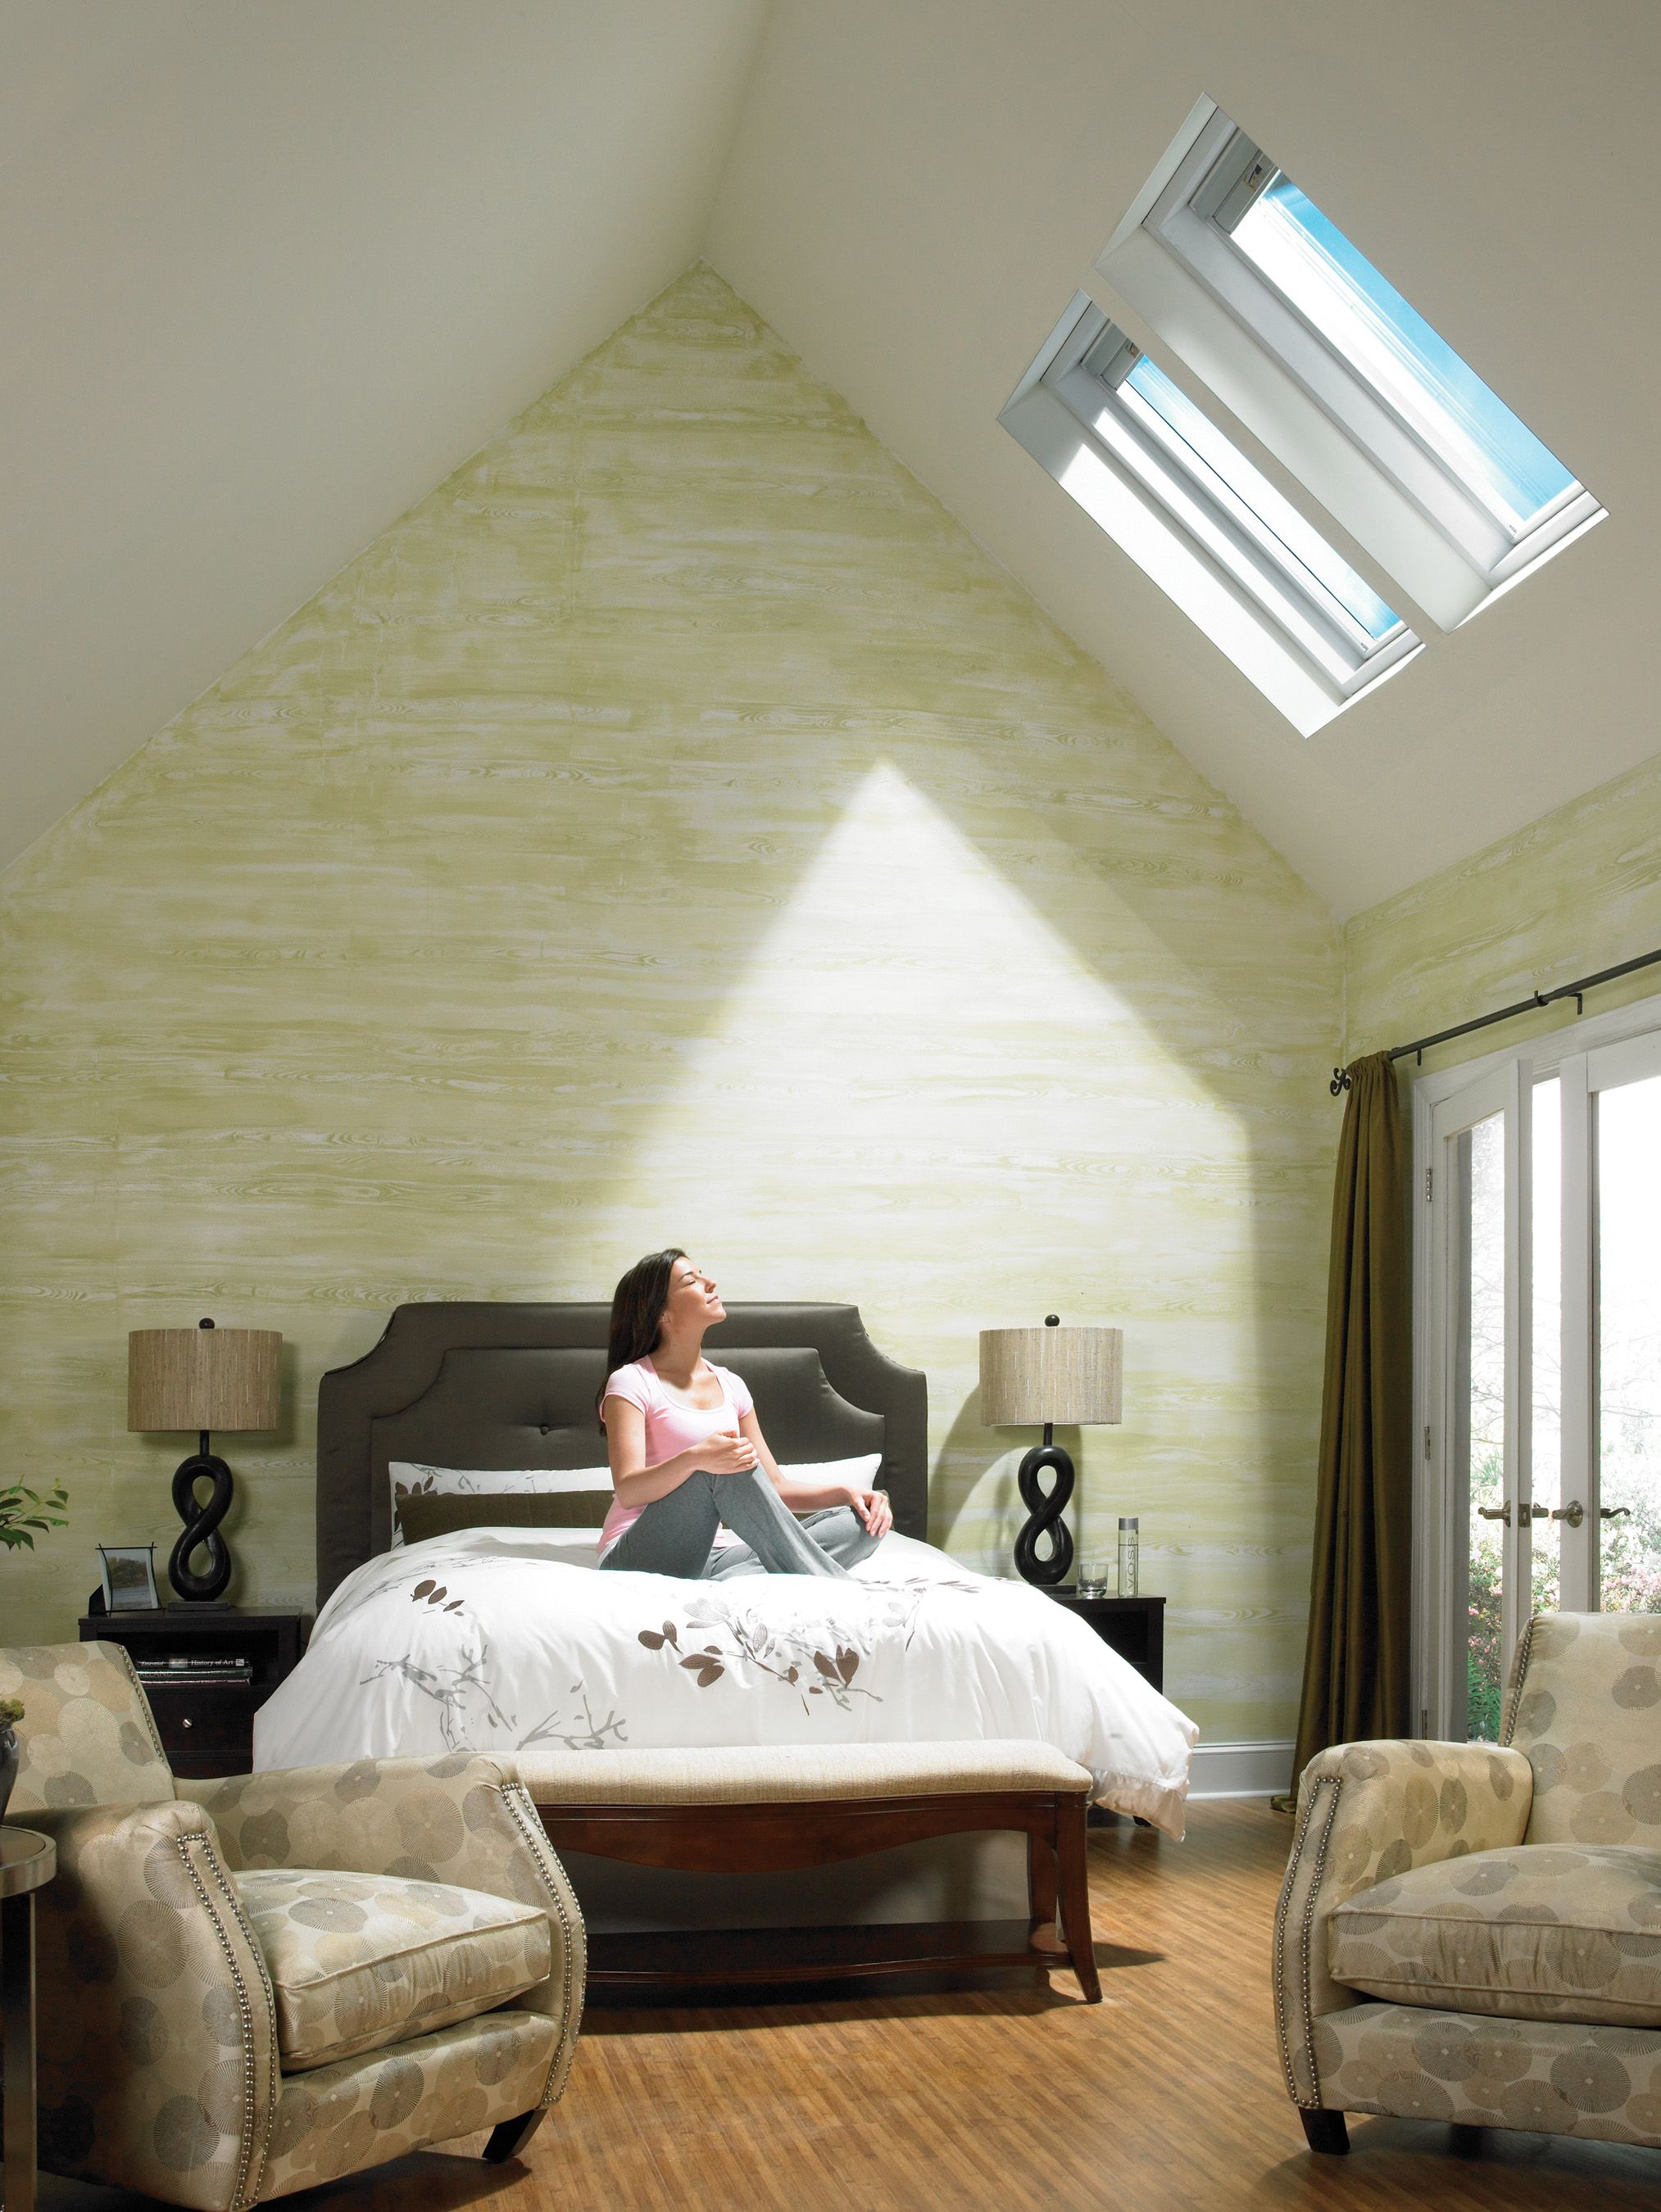 Skylights In Bedrooms Can Add A Dramatic New Dimension To The E While Providing Energy Efficient